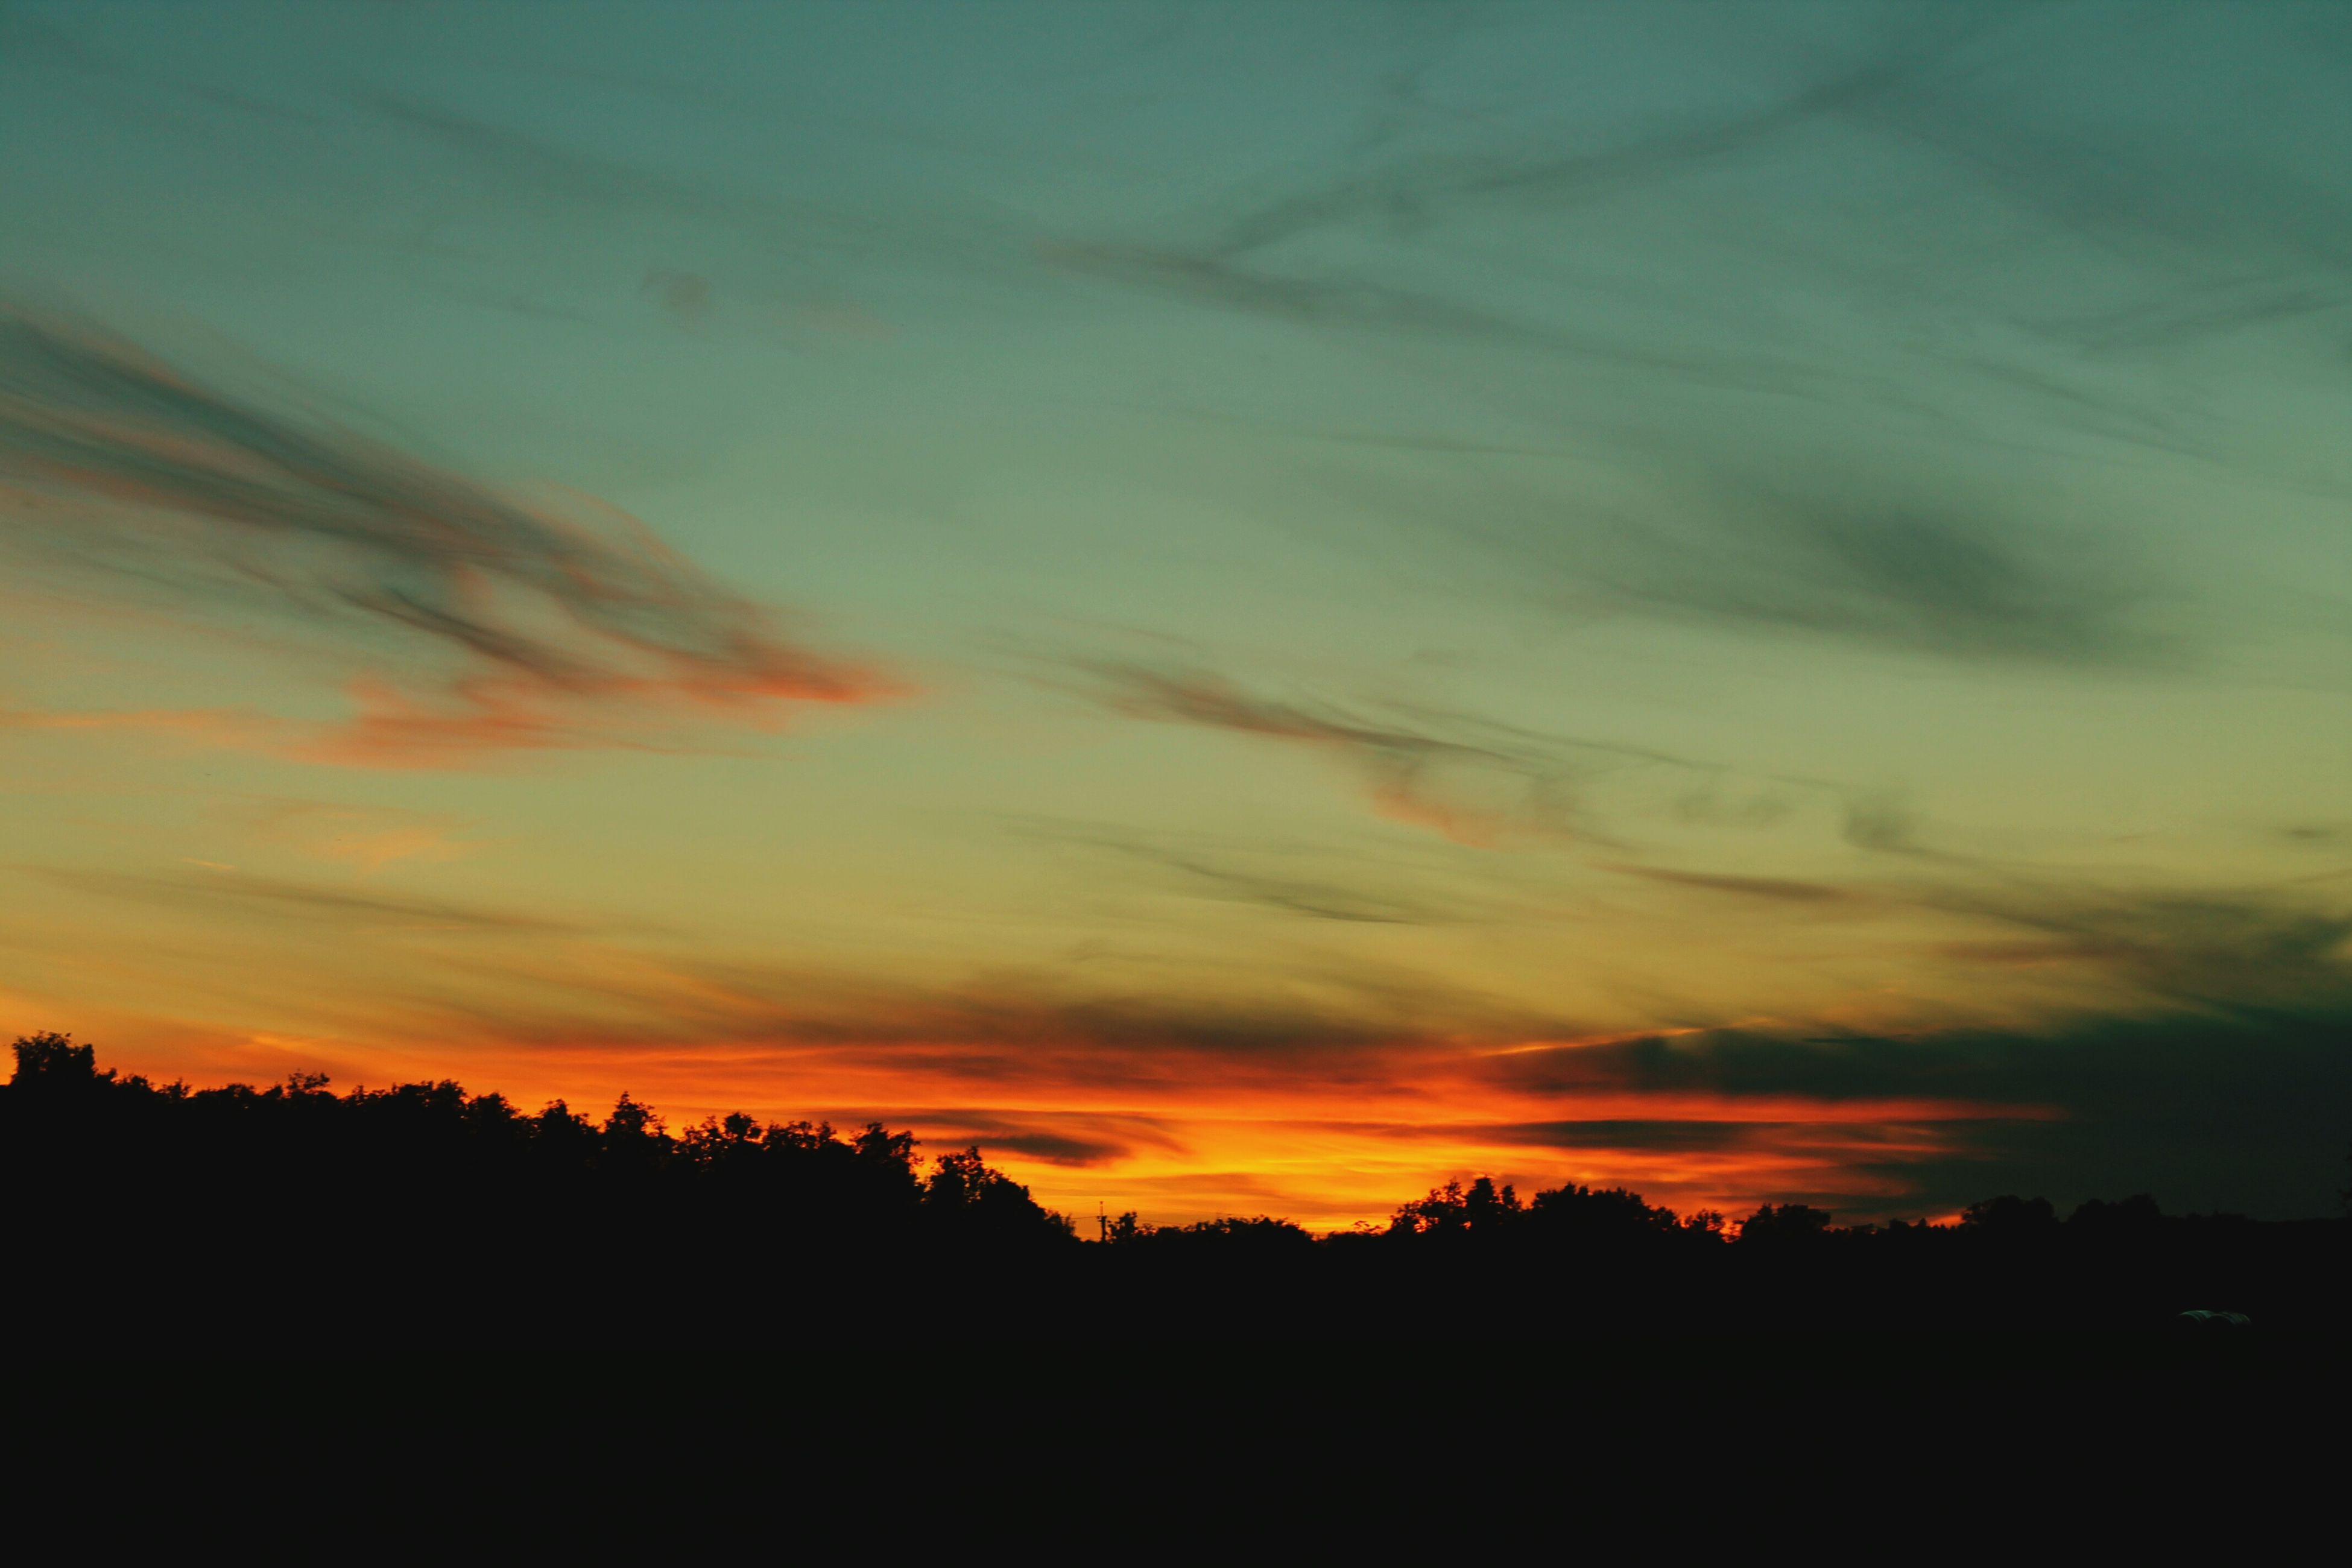 sunset, silhouette, nature, sky, tranquil scene, no people, scenics, tranquility, beauty in nature, tree, cloud - sky, outdoors